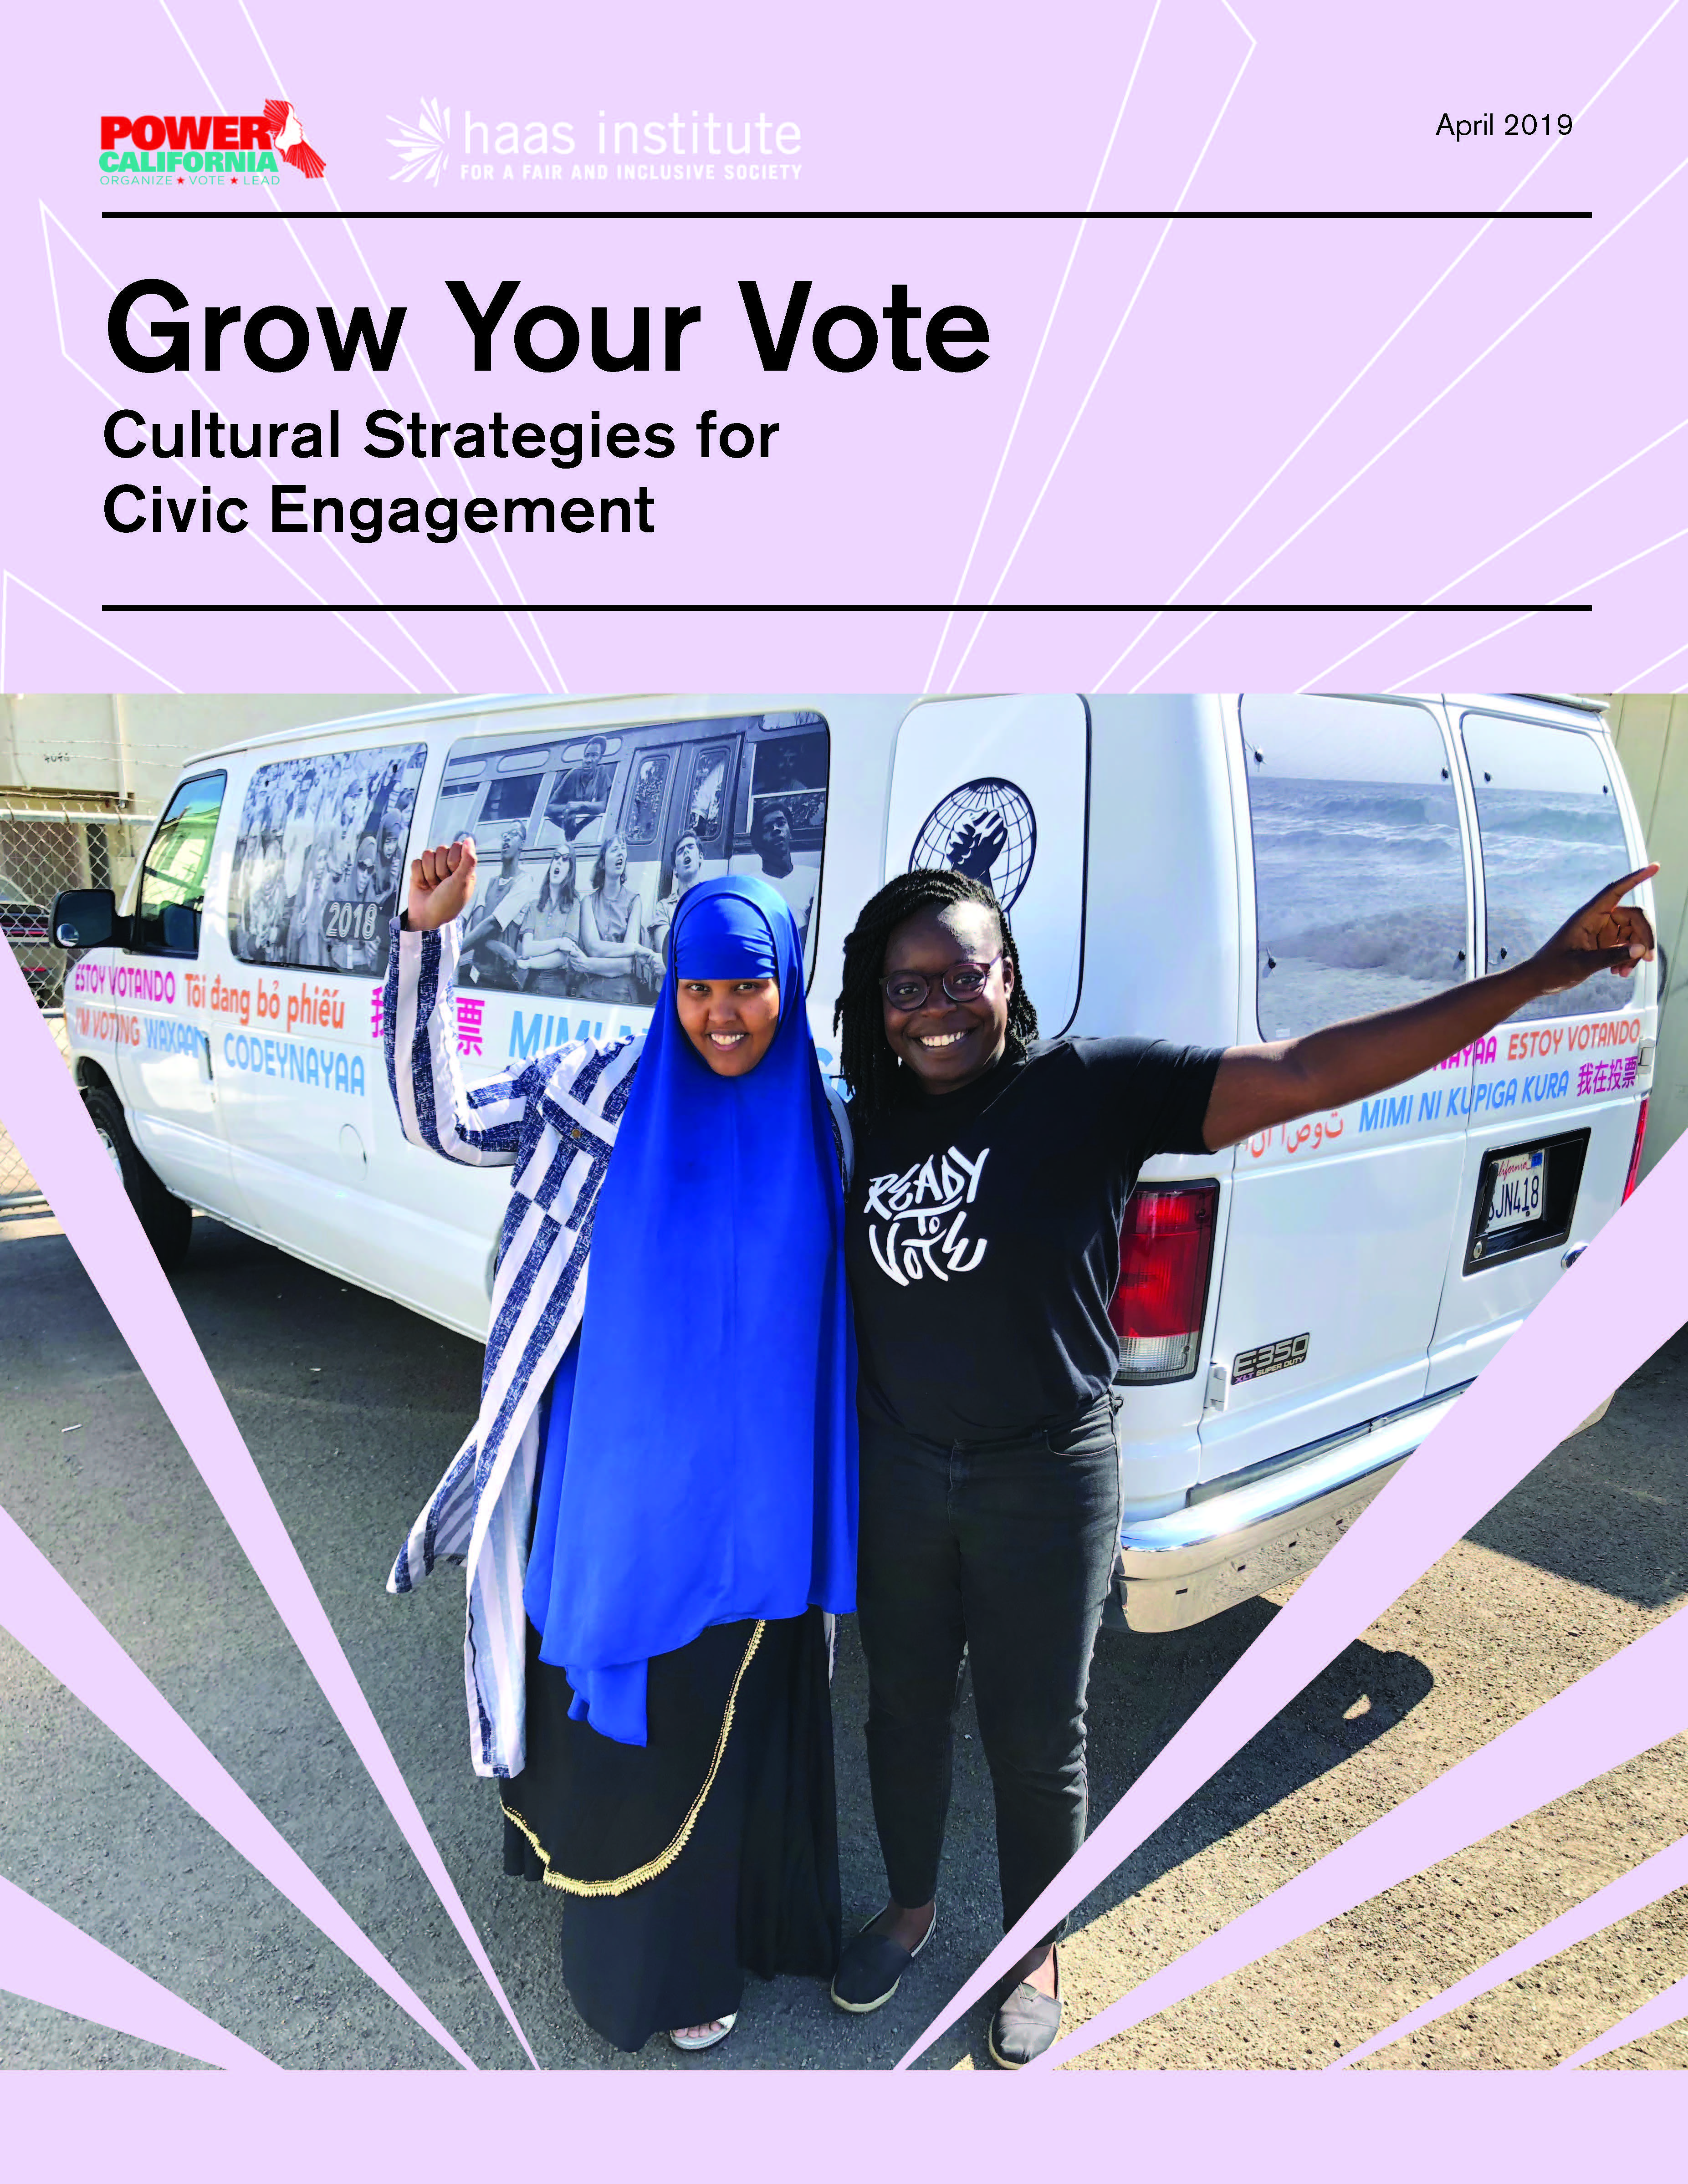 Cover of the Cultural Strategy Report shows two women, one wearing a blue hijab, making victory gestures in front of a white van